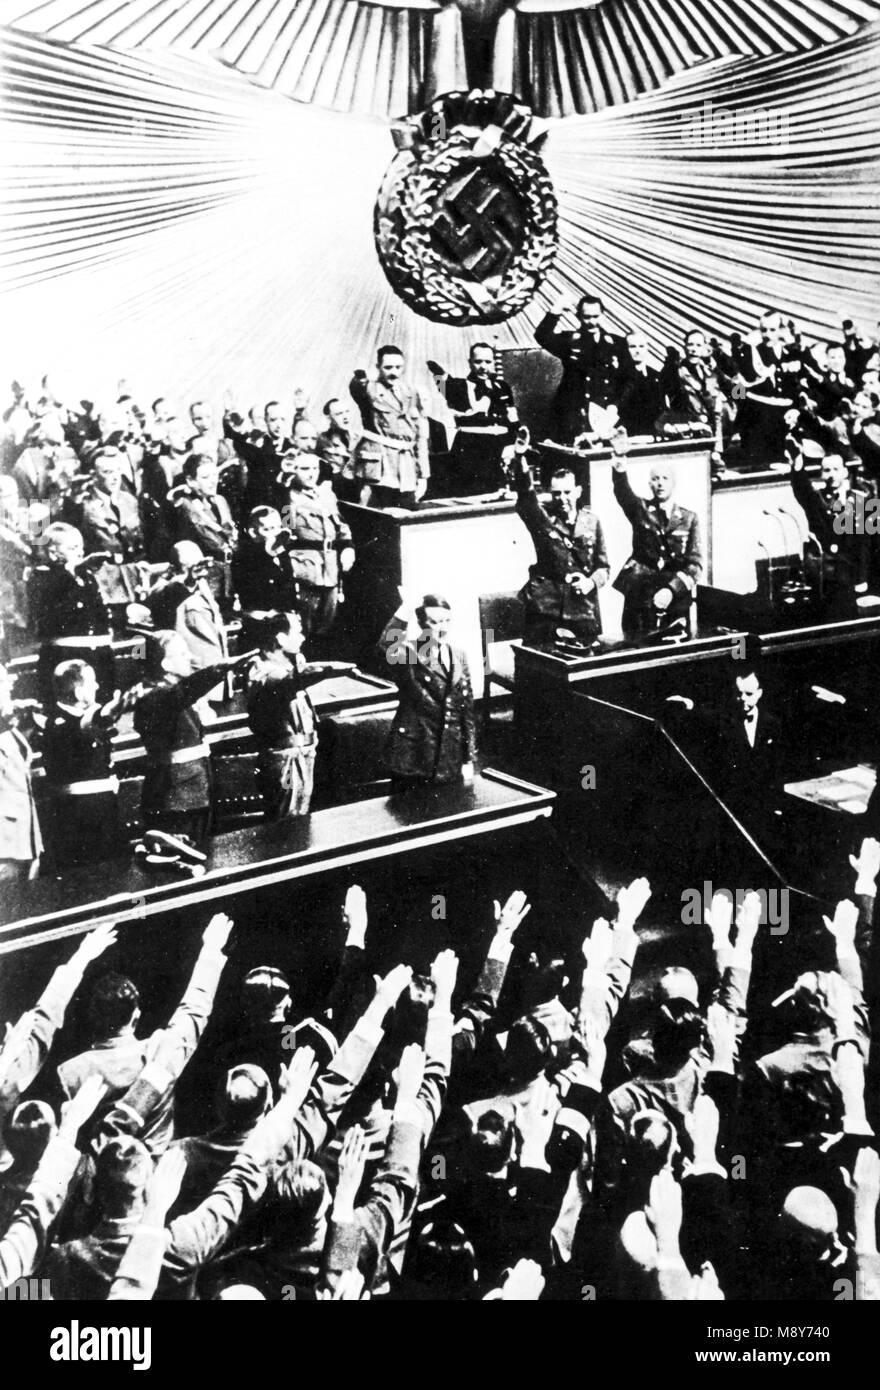 adolf hitler at the reichstag announces the invasion of poland, berlin, 1939 - Stock Image